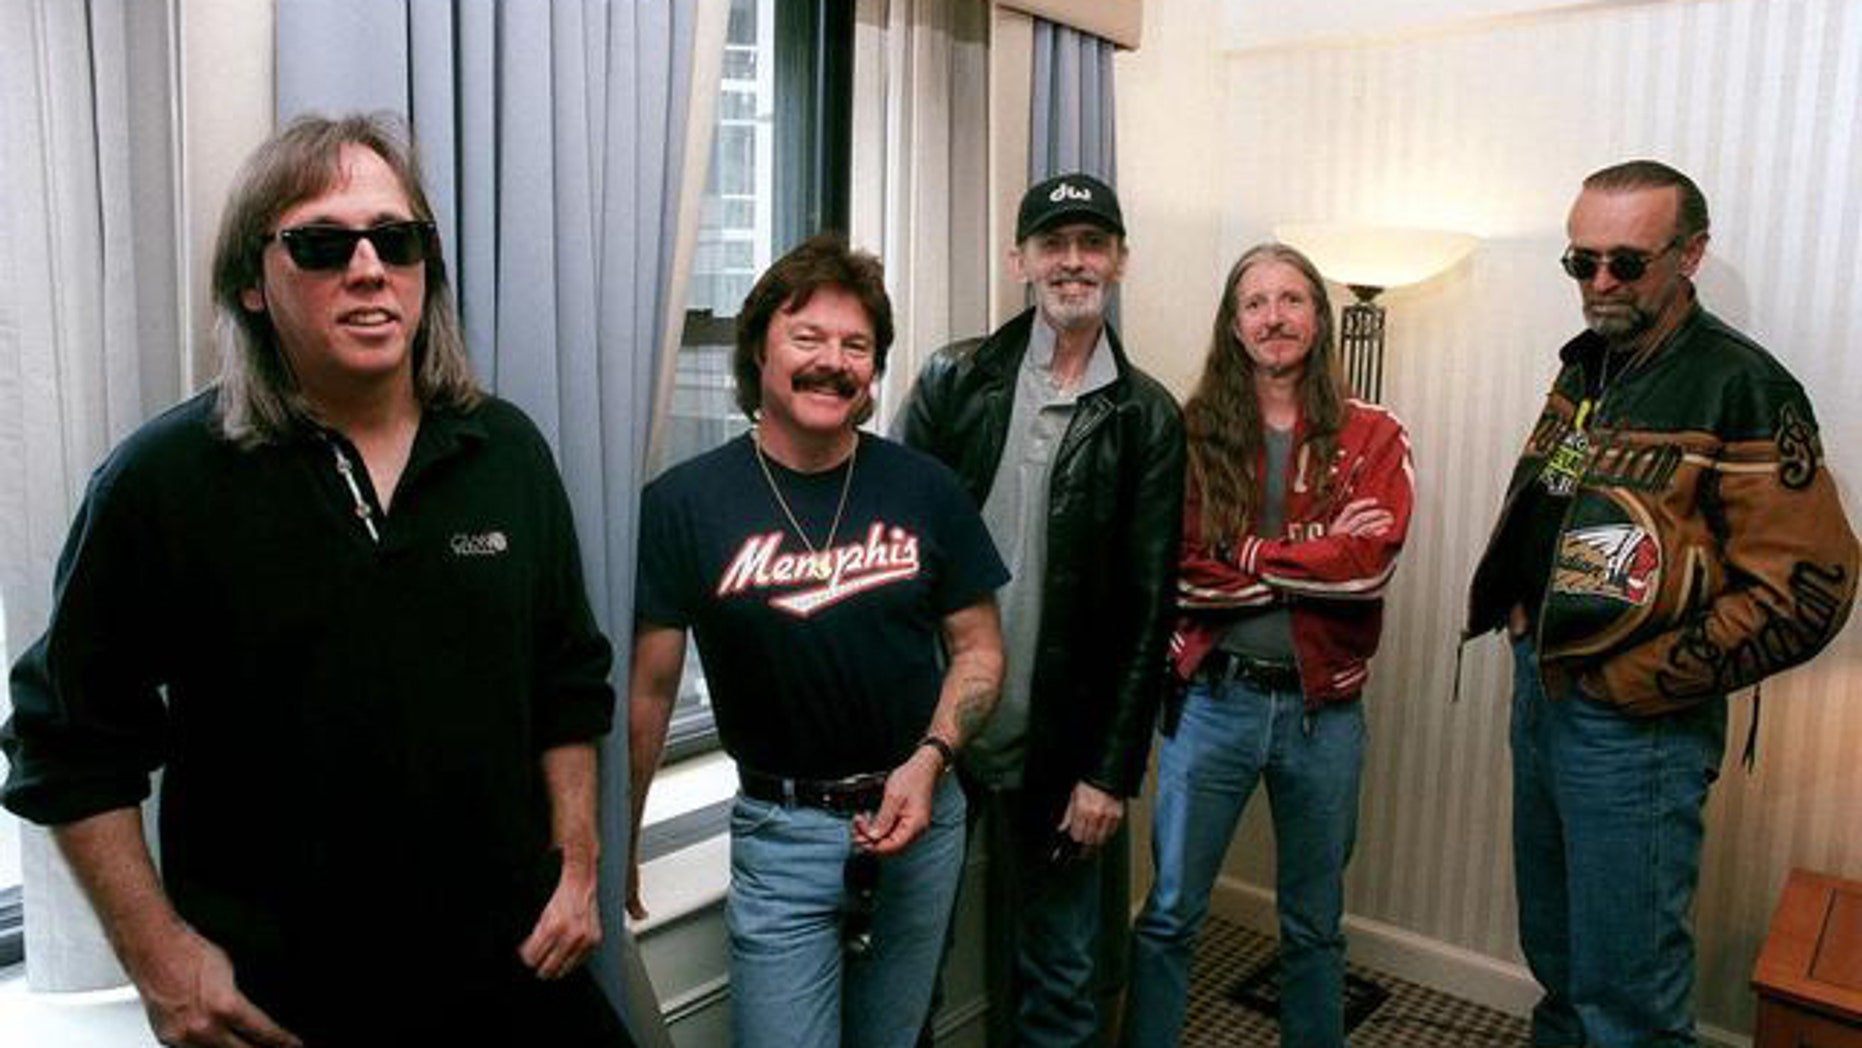 **FILE** The classic rock group The Doobie Brothers. L to R: ohn McFee, Tom Johnston, Keith Knudsen, Patrick Simmons and Michael Hossack.